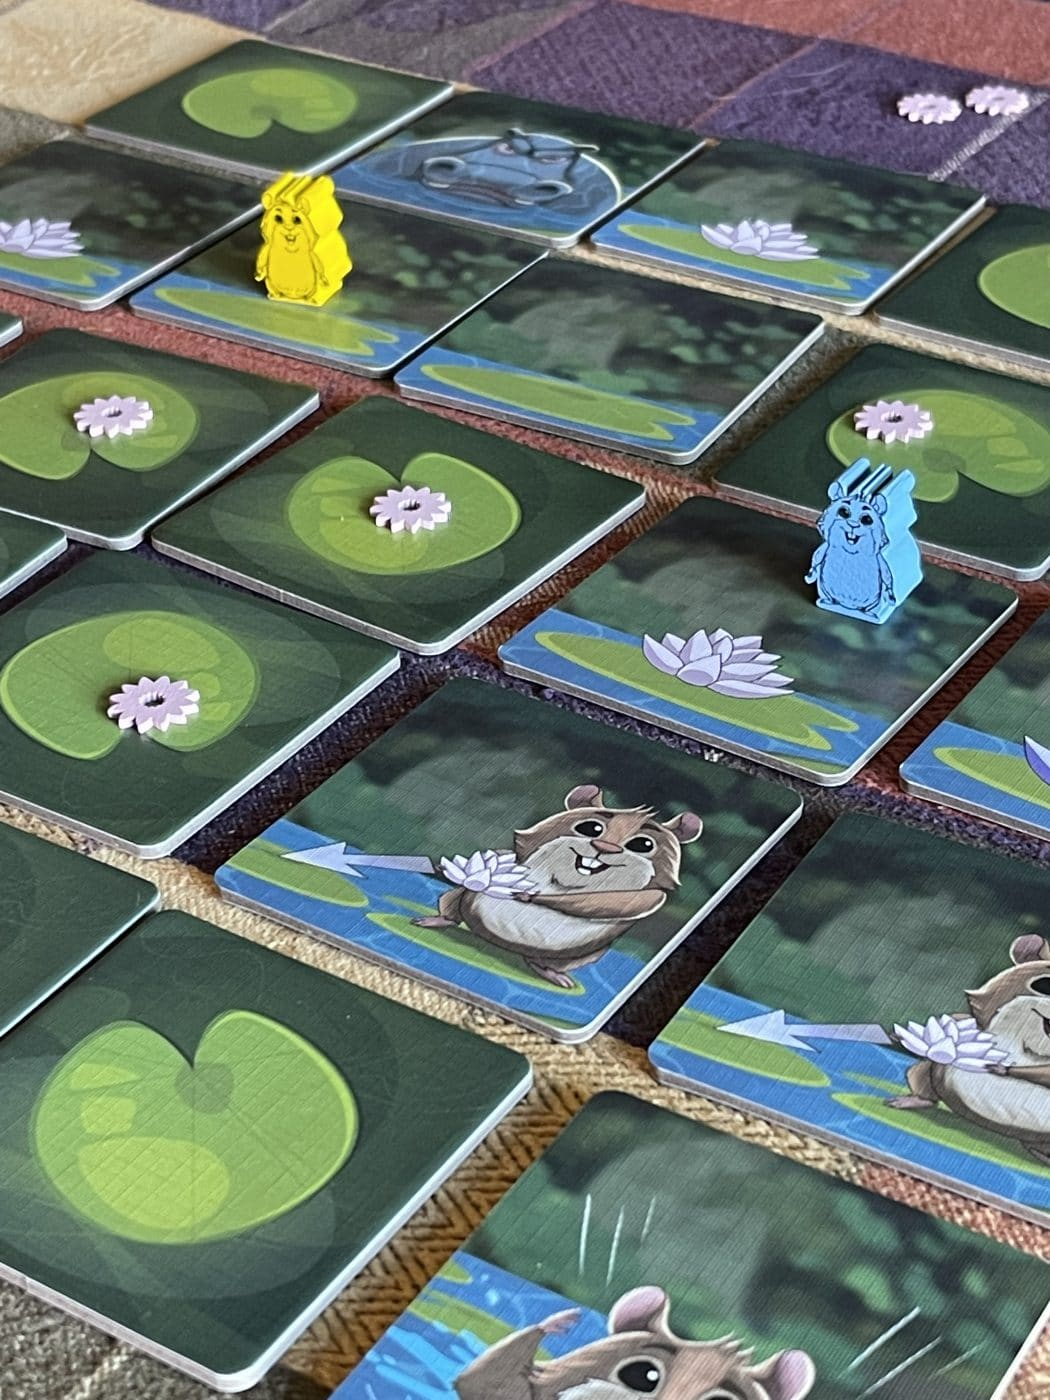 The game board and meeples